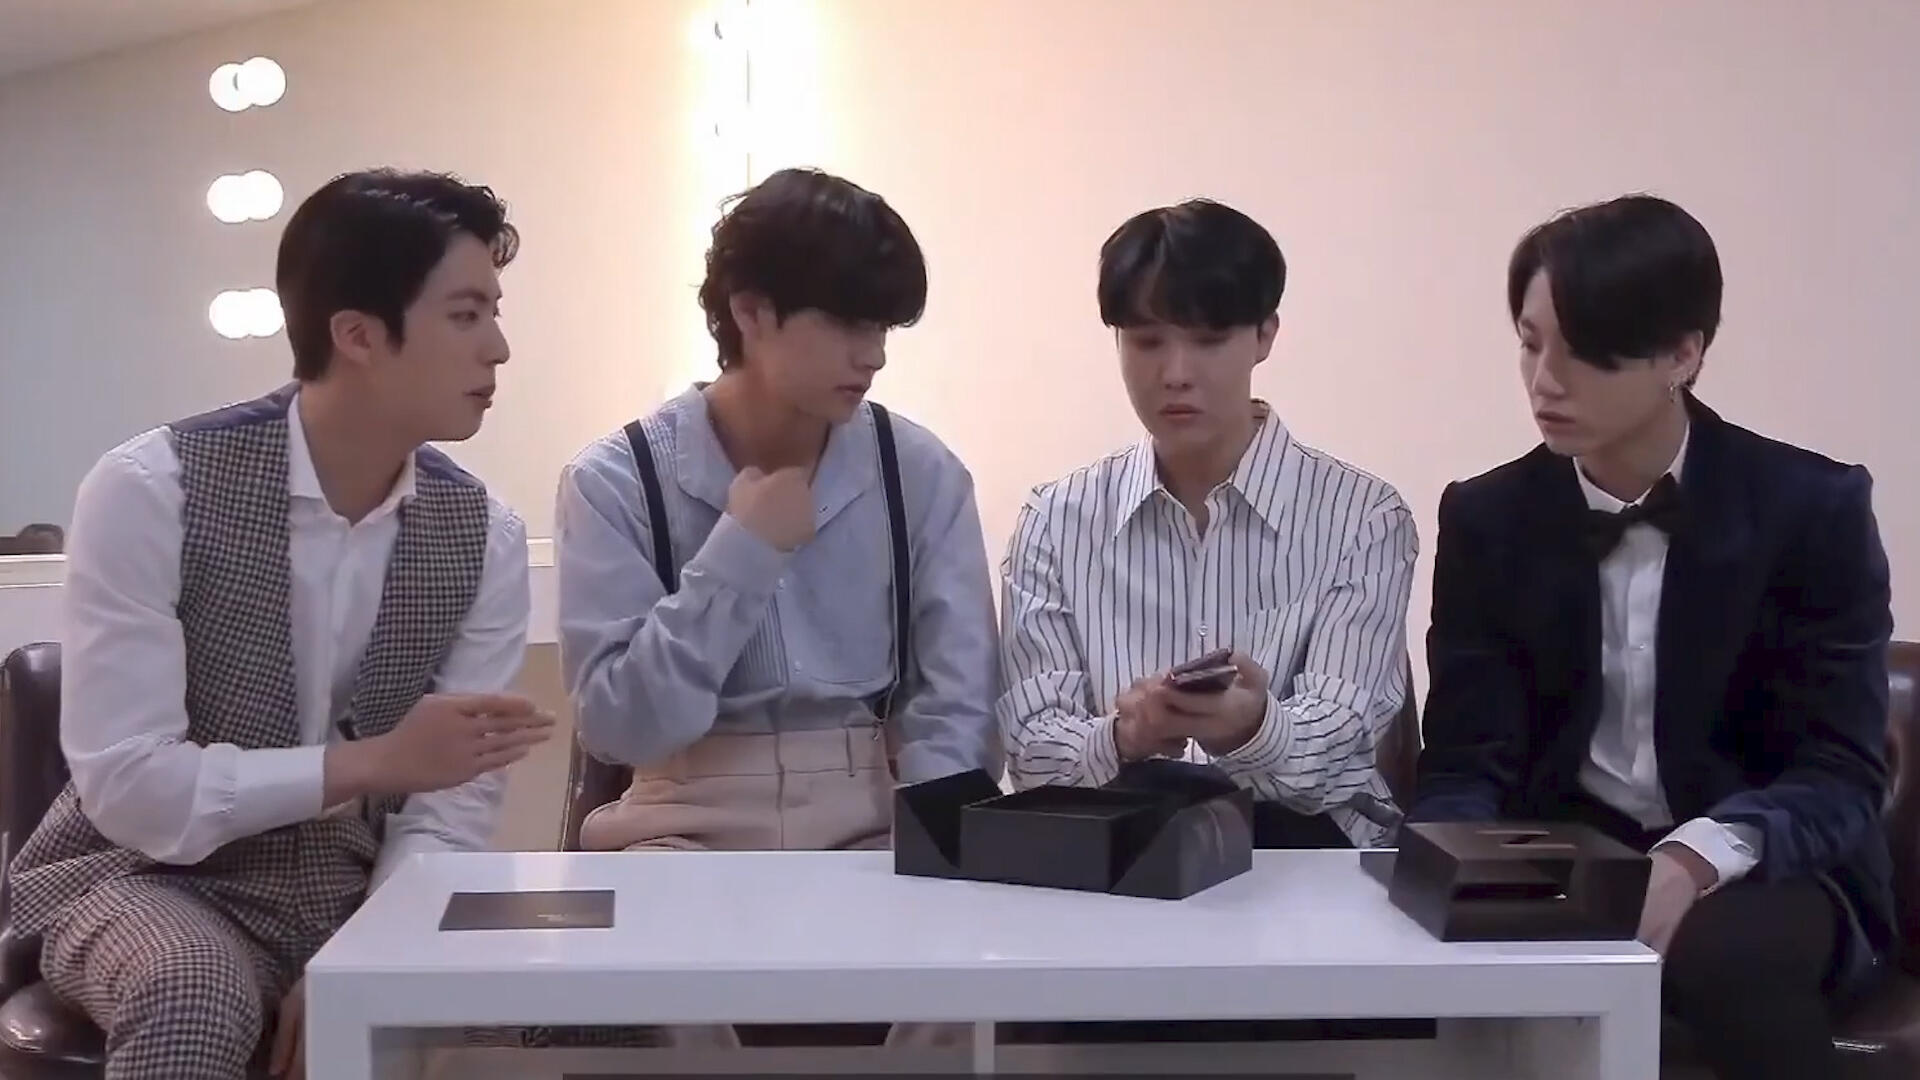 Video: Samsung and BTS introduce the new Galaxy Z Fold 2